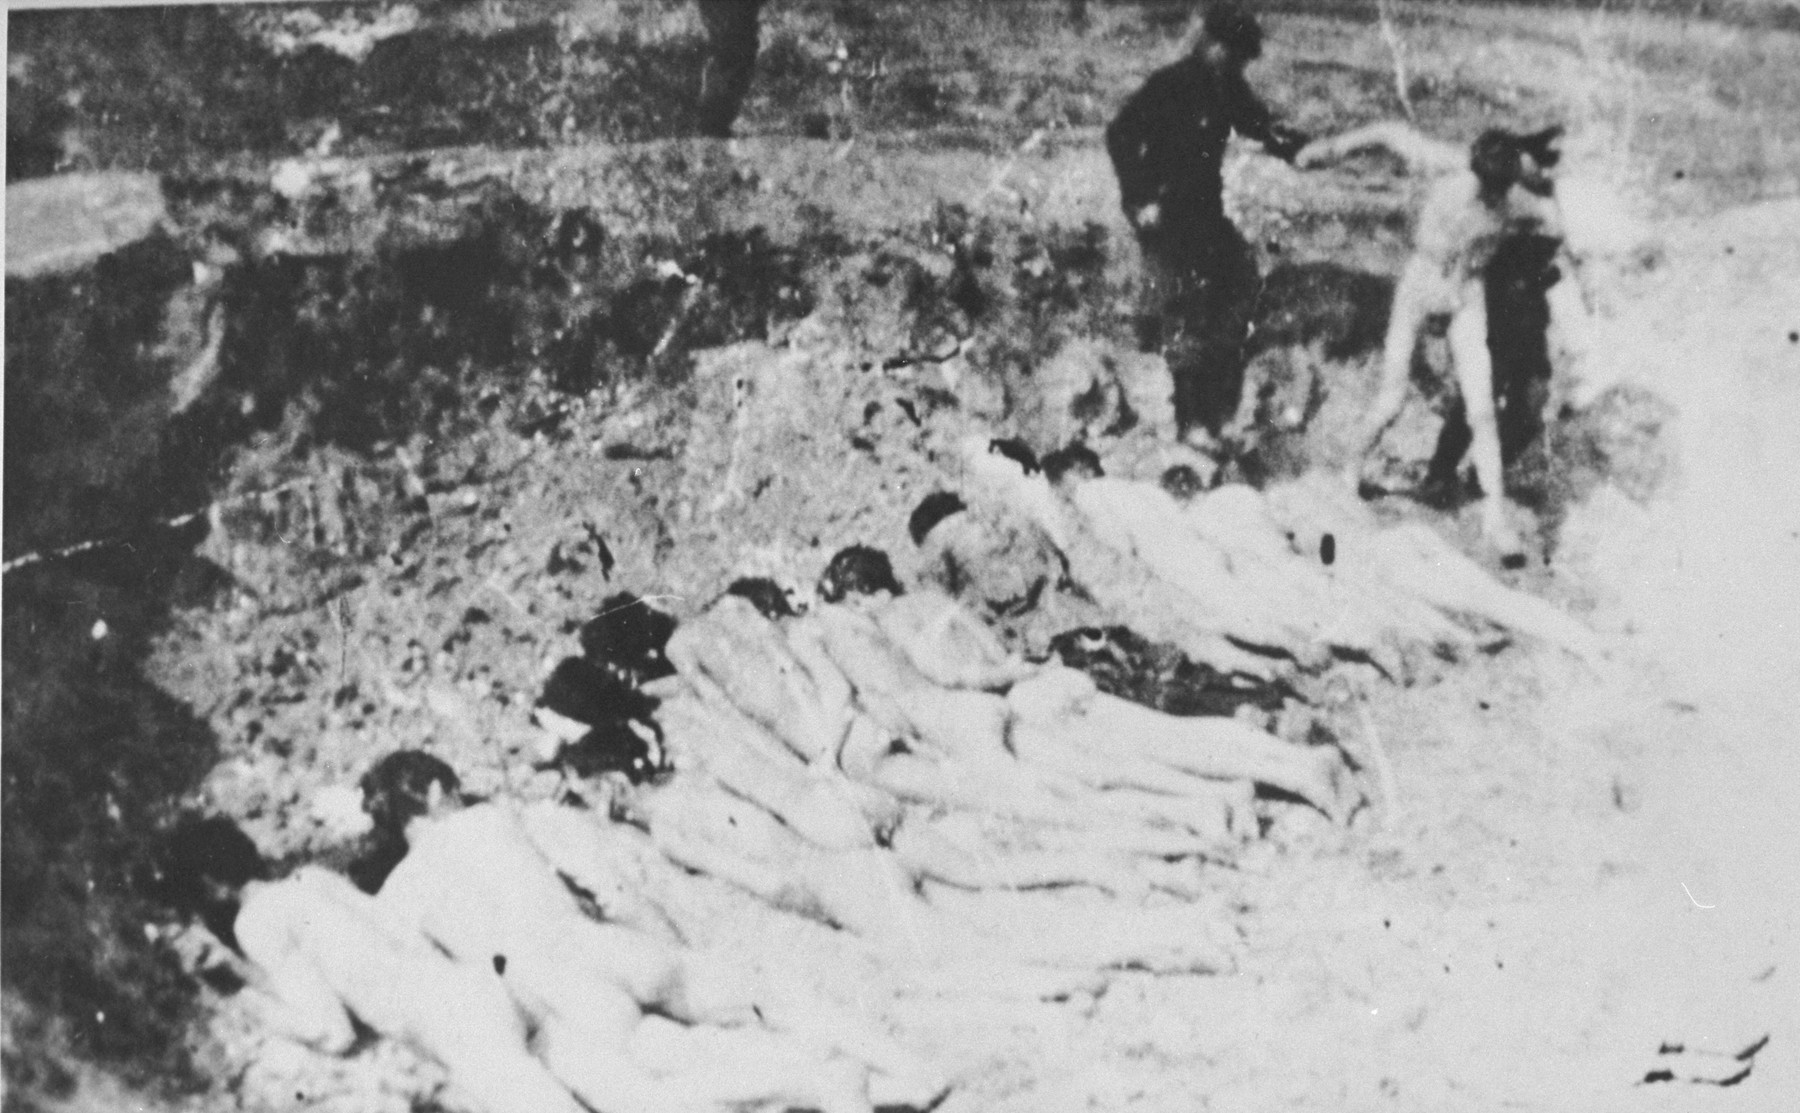 A naked prisoner is led to an execution site, possibly at Ponary, where others either have been shot already or forced to lie face down prior to being shot.